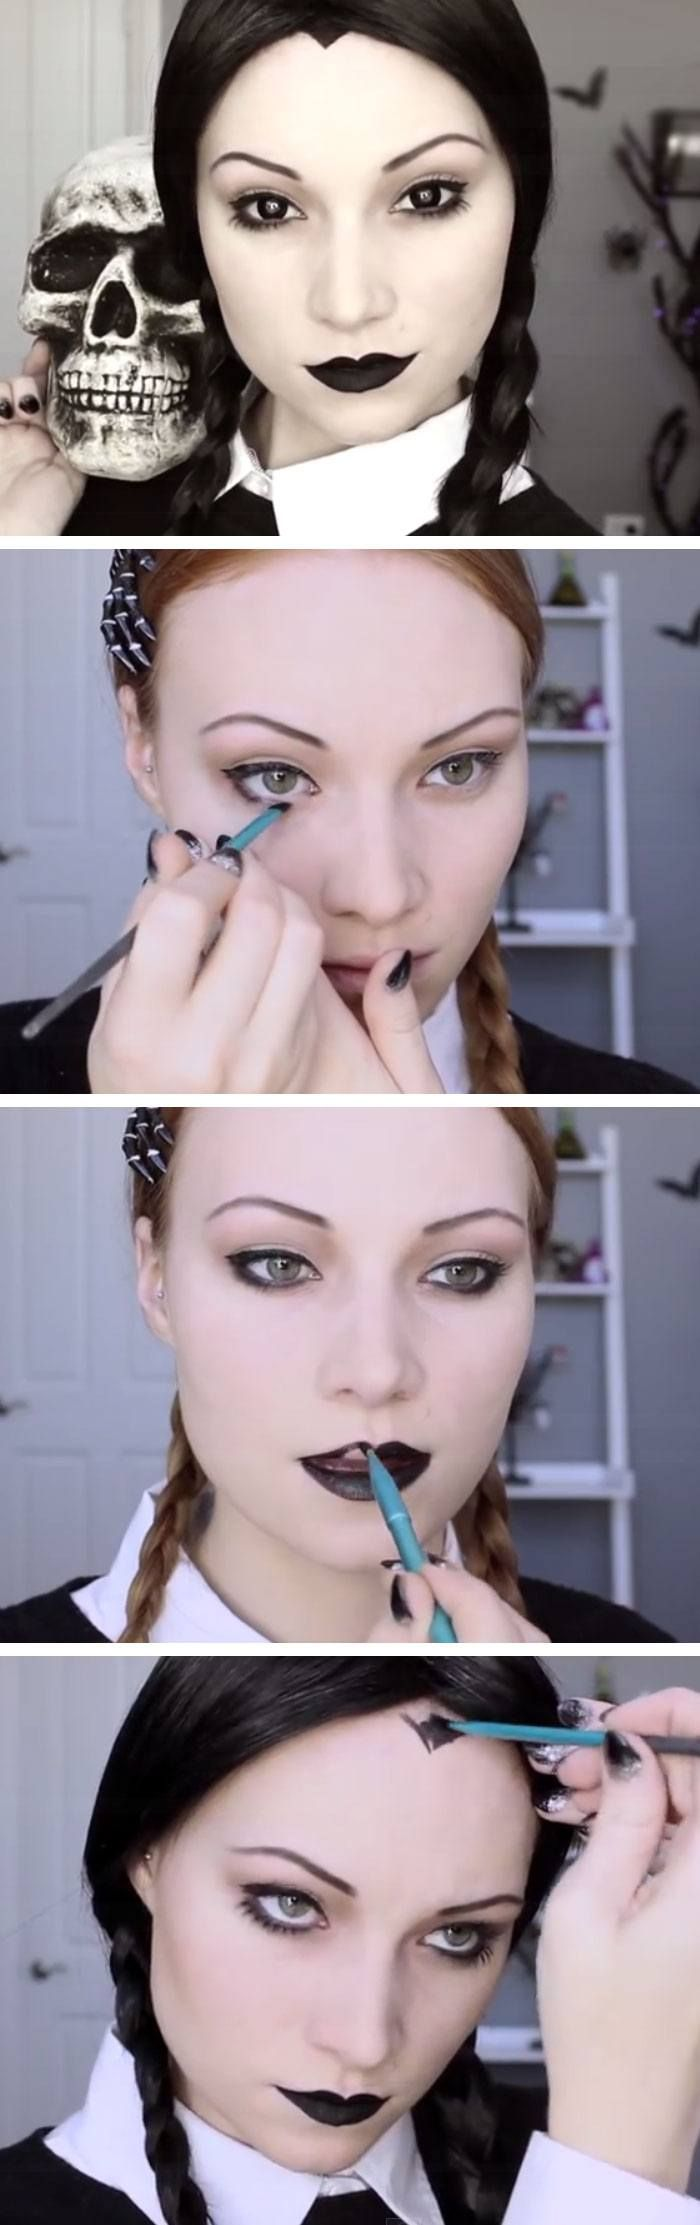 Wednesday Addams Makeup Tutorial | Click Pic for 18 Easy DIY Halloween Costumes for Women | Last Minute Halloween Costumes for Girls